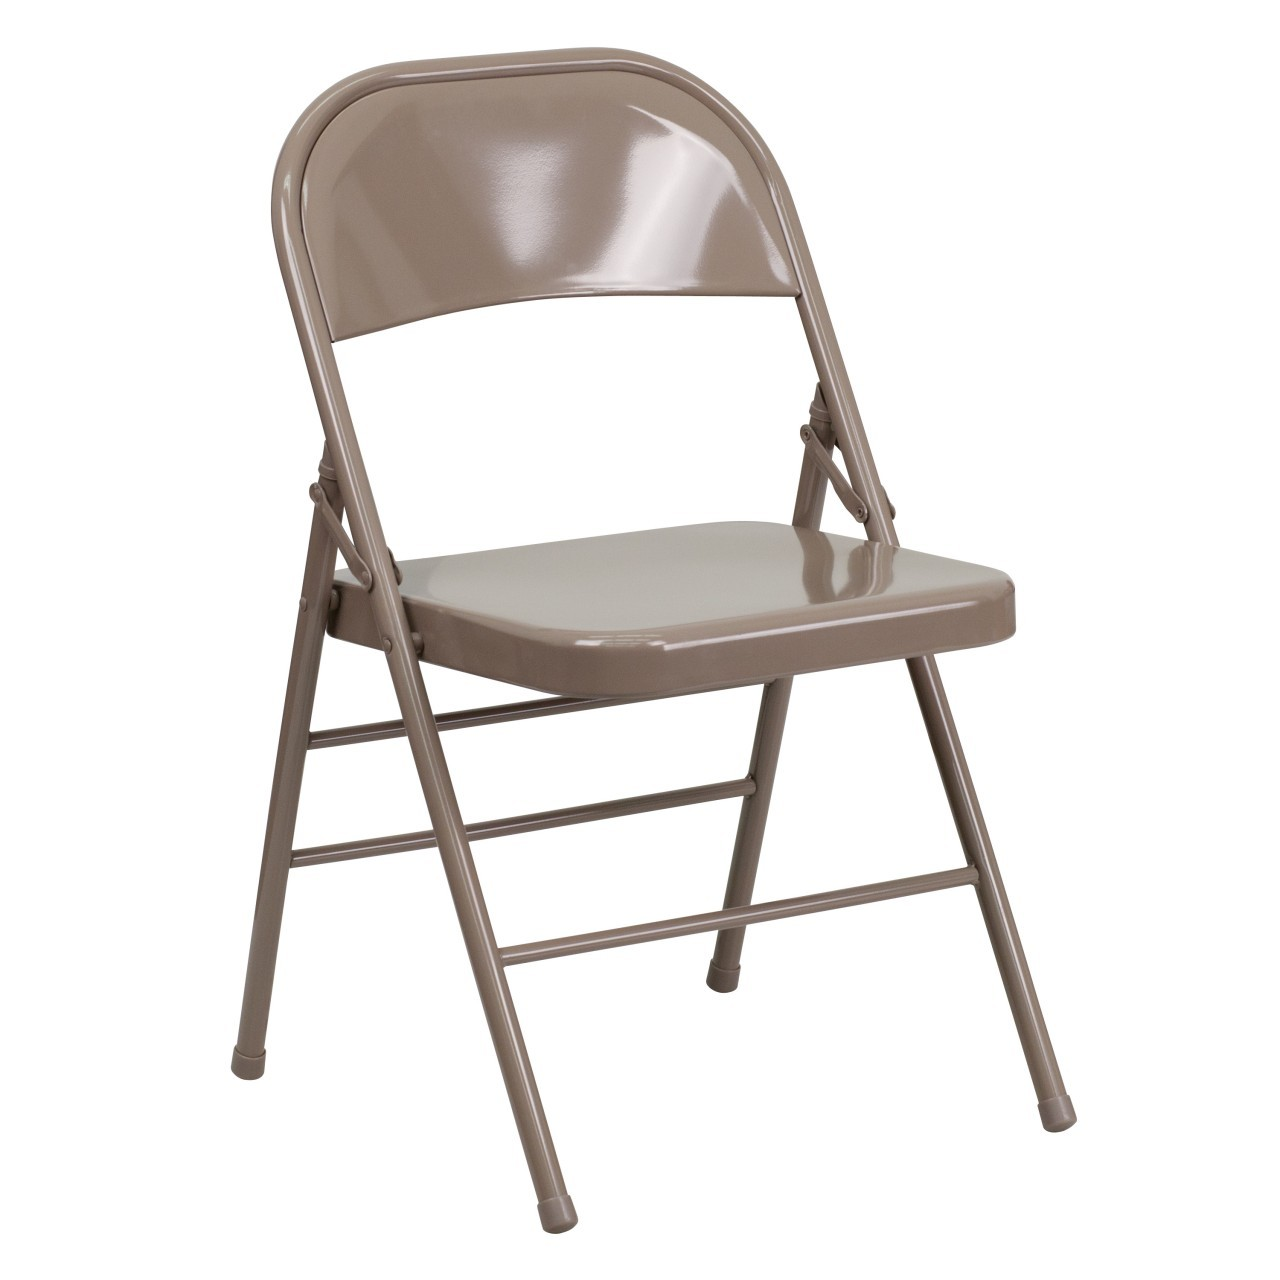 metal folding chairs wholesale pod hanging chair cushion the gospel and  reachkeepconference